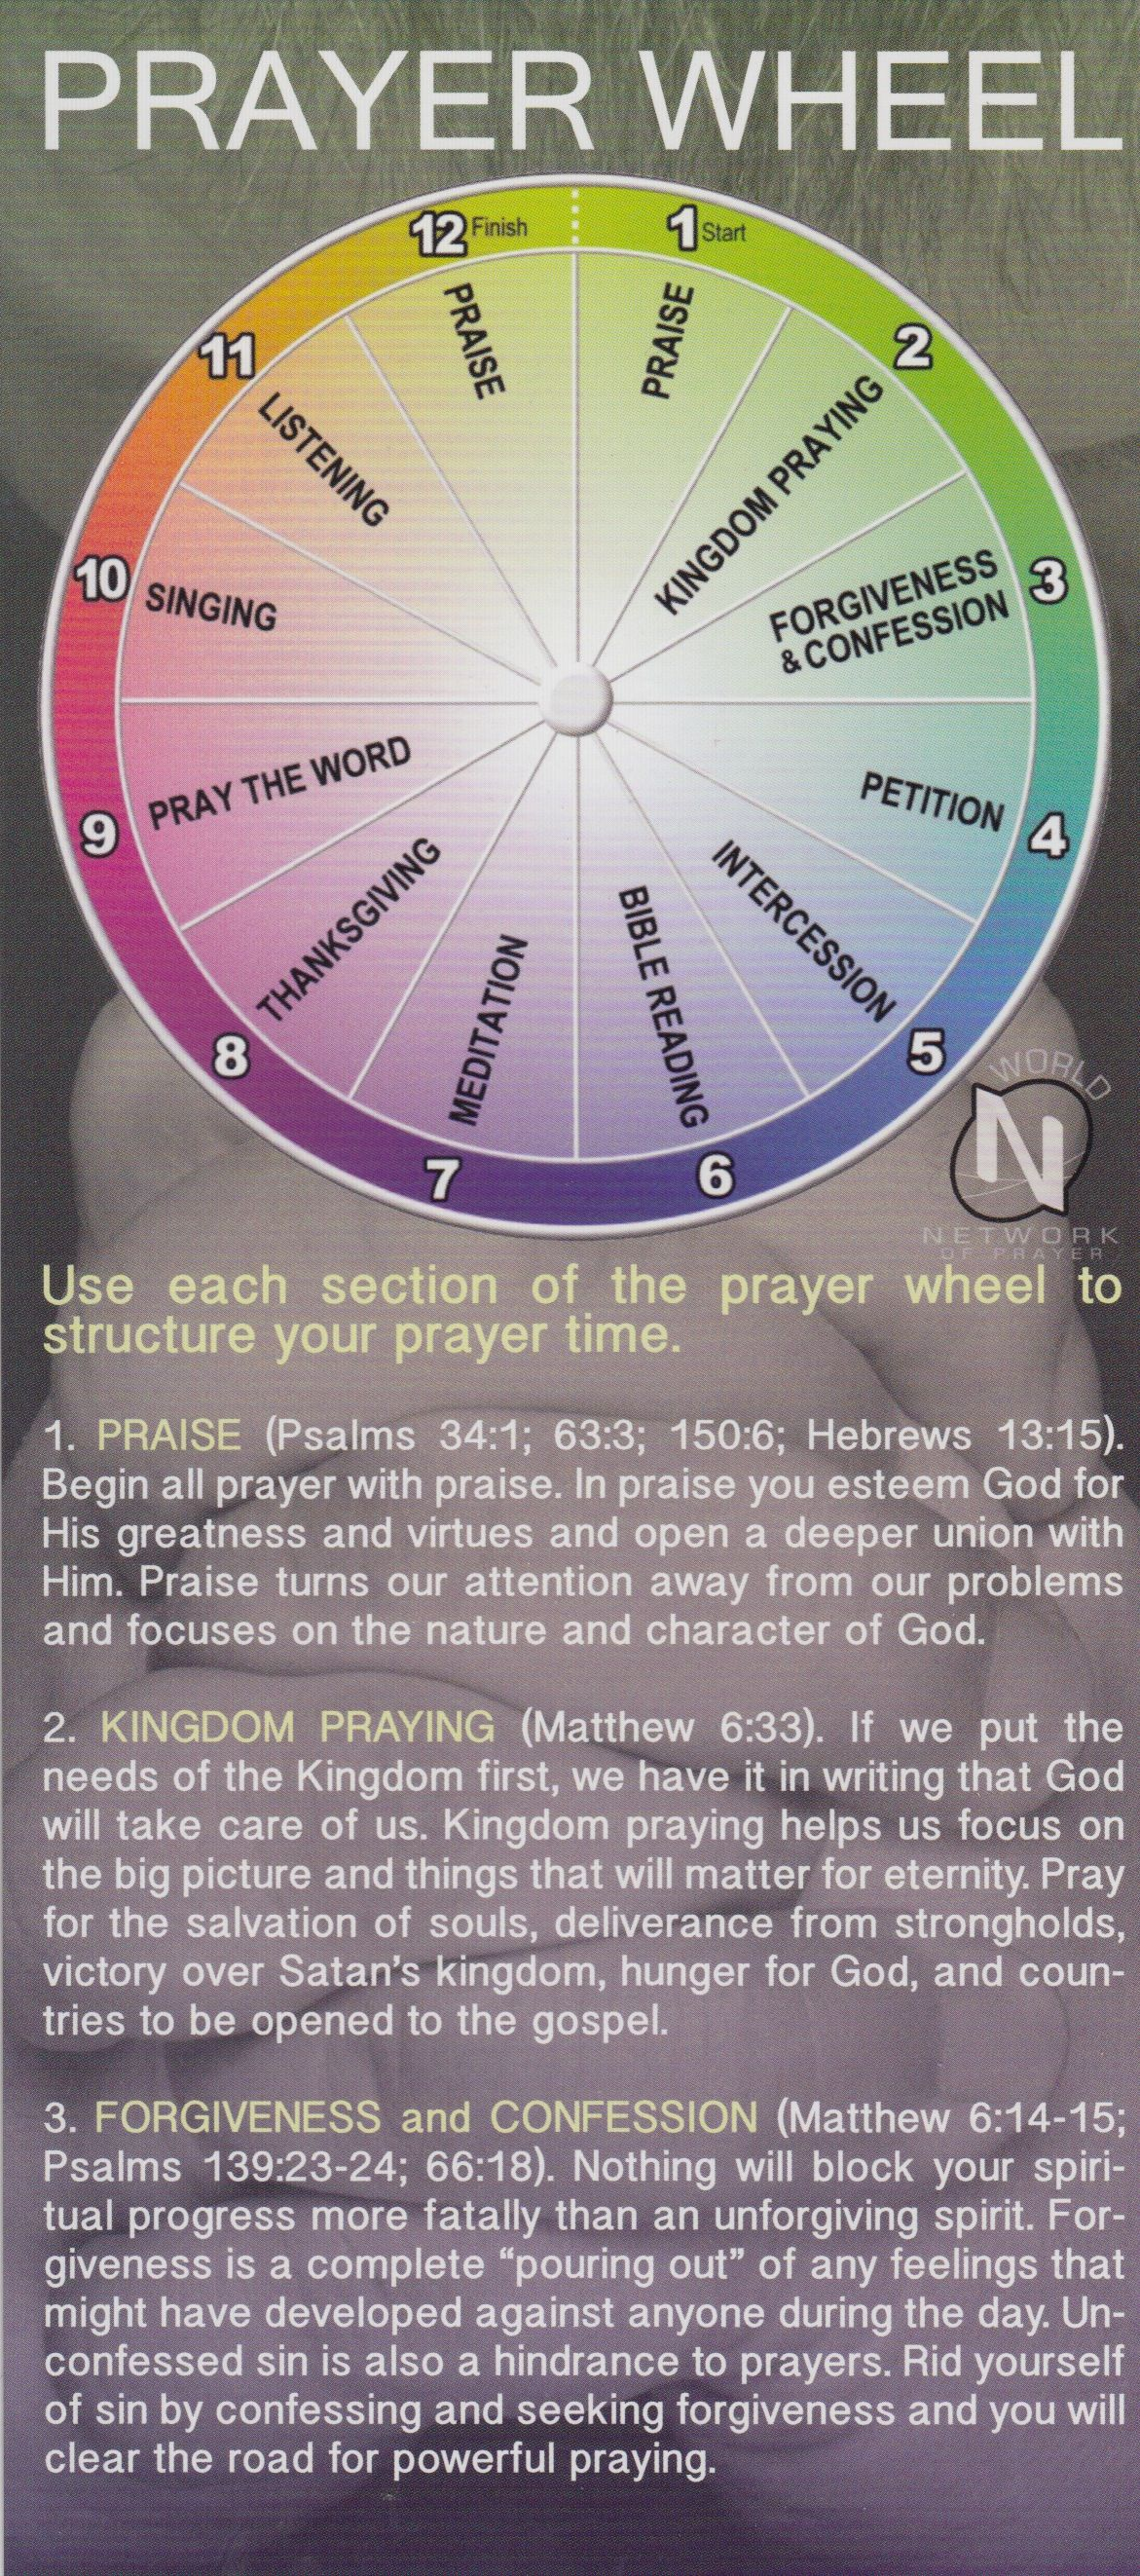 Pentecostal Publishing House - Prayer Wheel - Prayer Guide